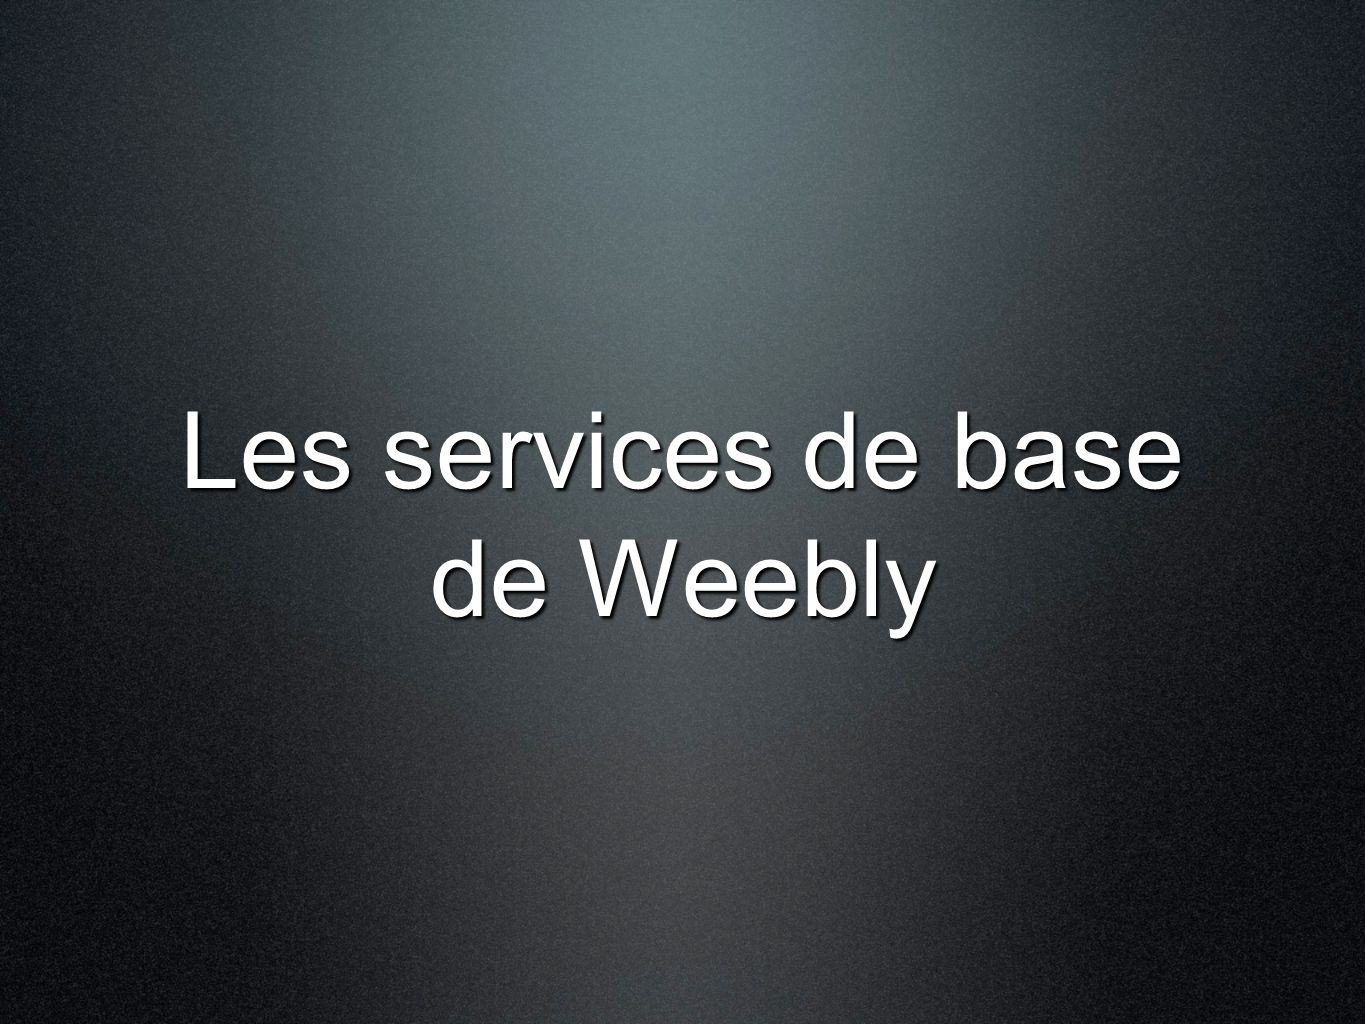 Les services de base de Weebly